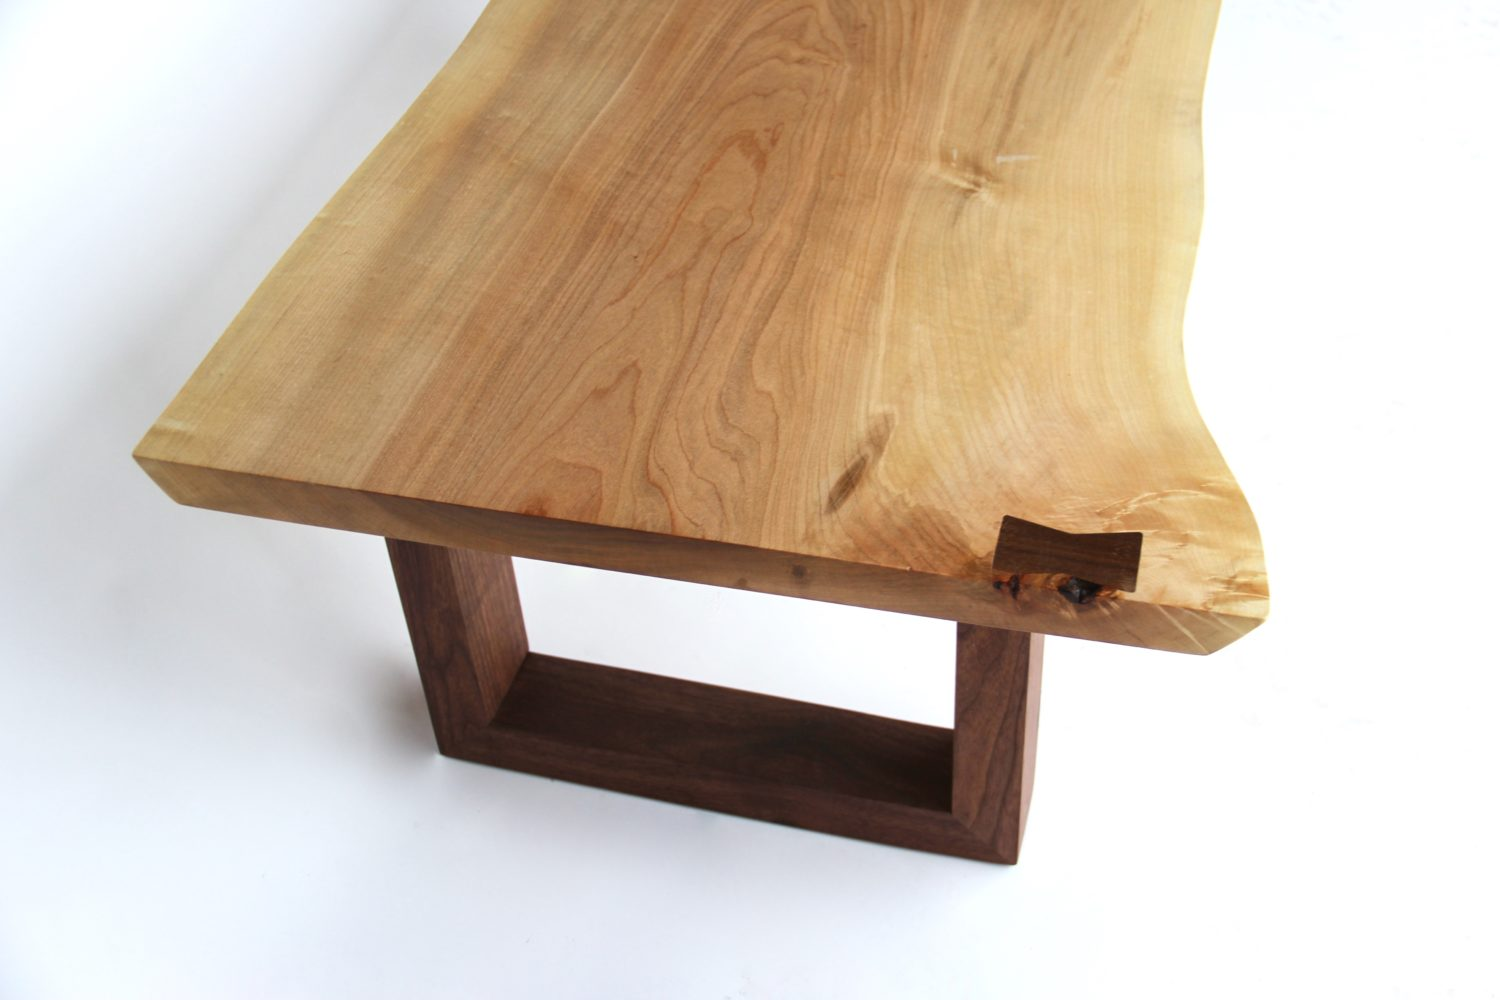 Live Edge Maple and Walnut Coffee Table by Long White Beard Furniture